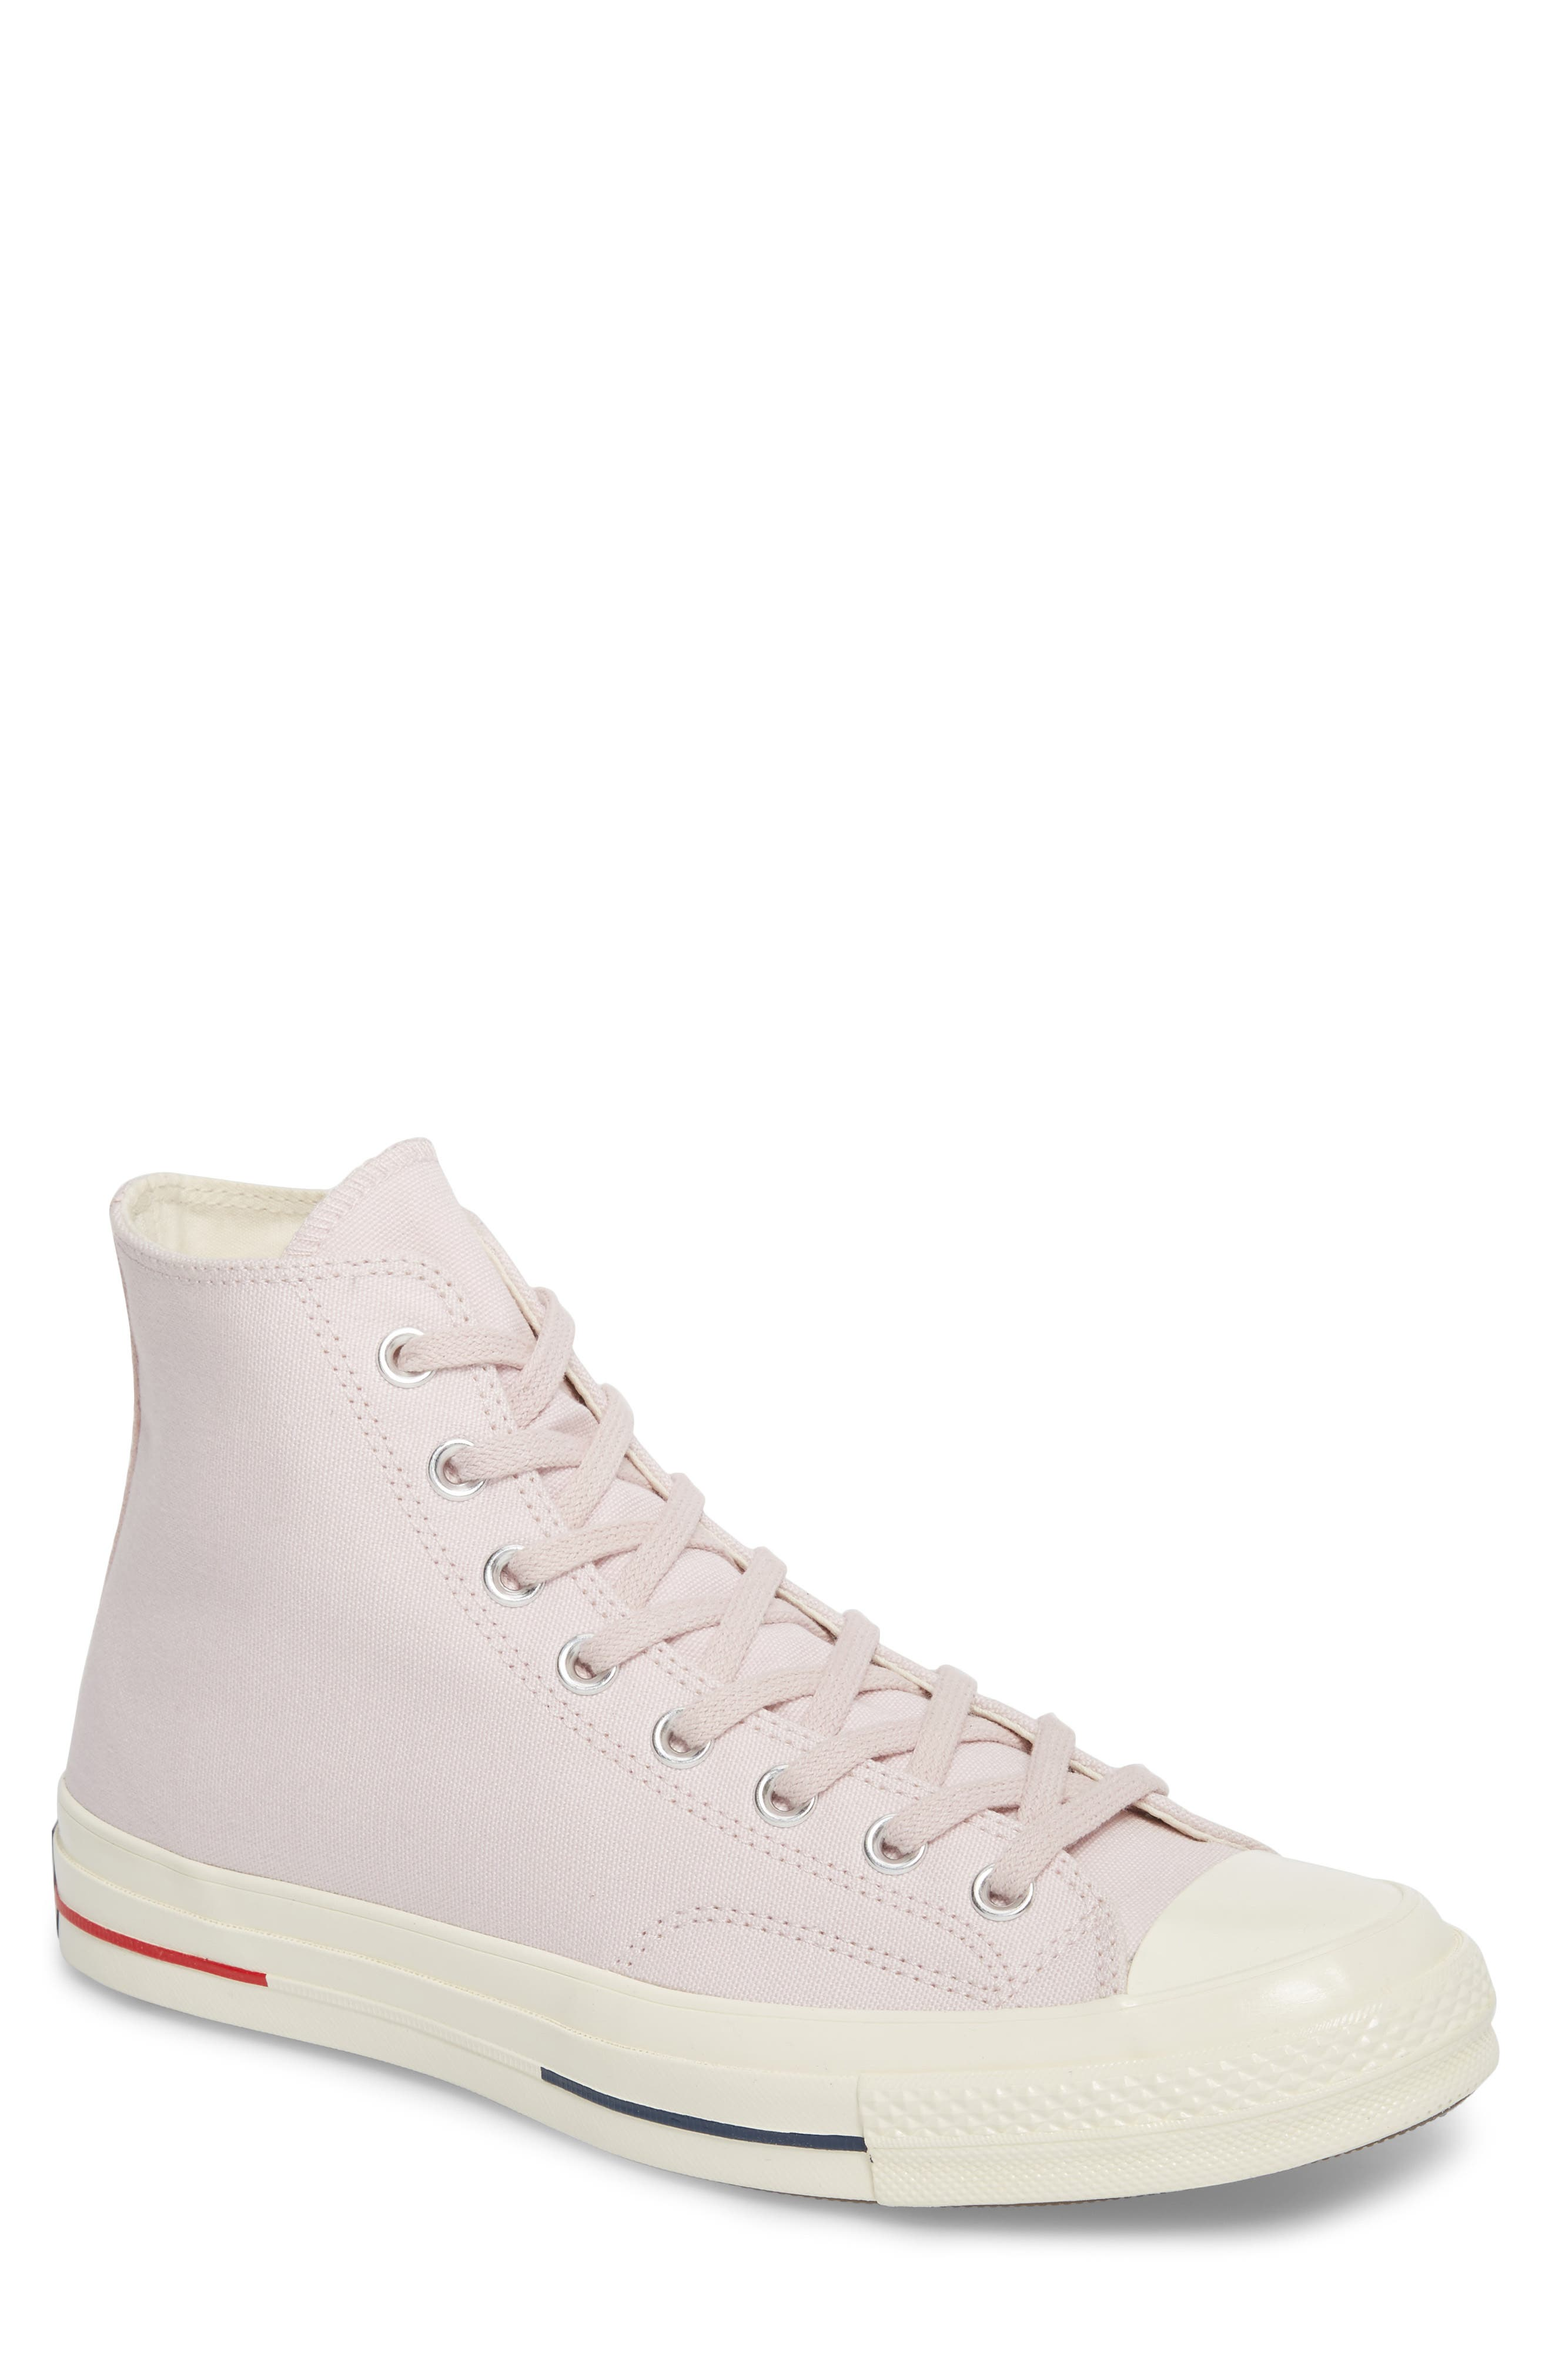 Chuck Taylor<sup>®</sup> All Star<sup>®</sup> '70 Heritage High Top Sneaker,                             Main thumbnail 1, color,                             653